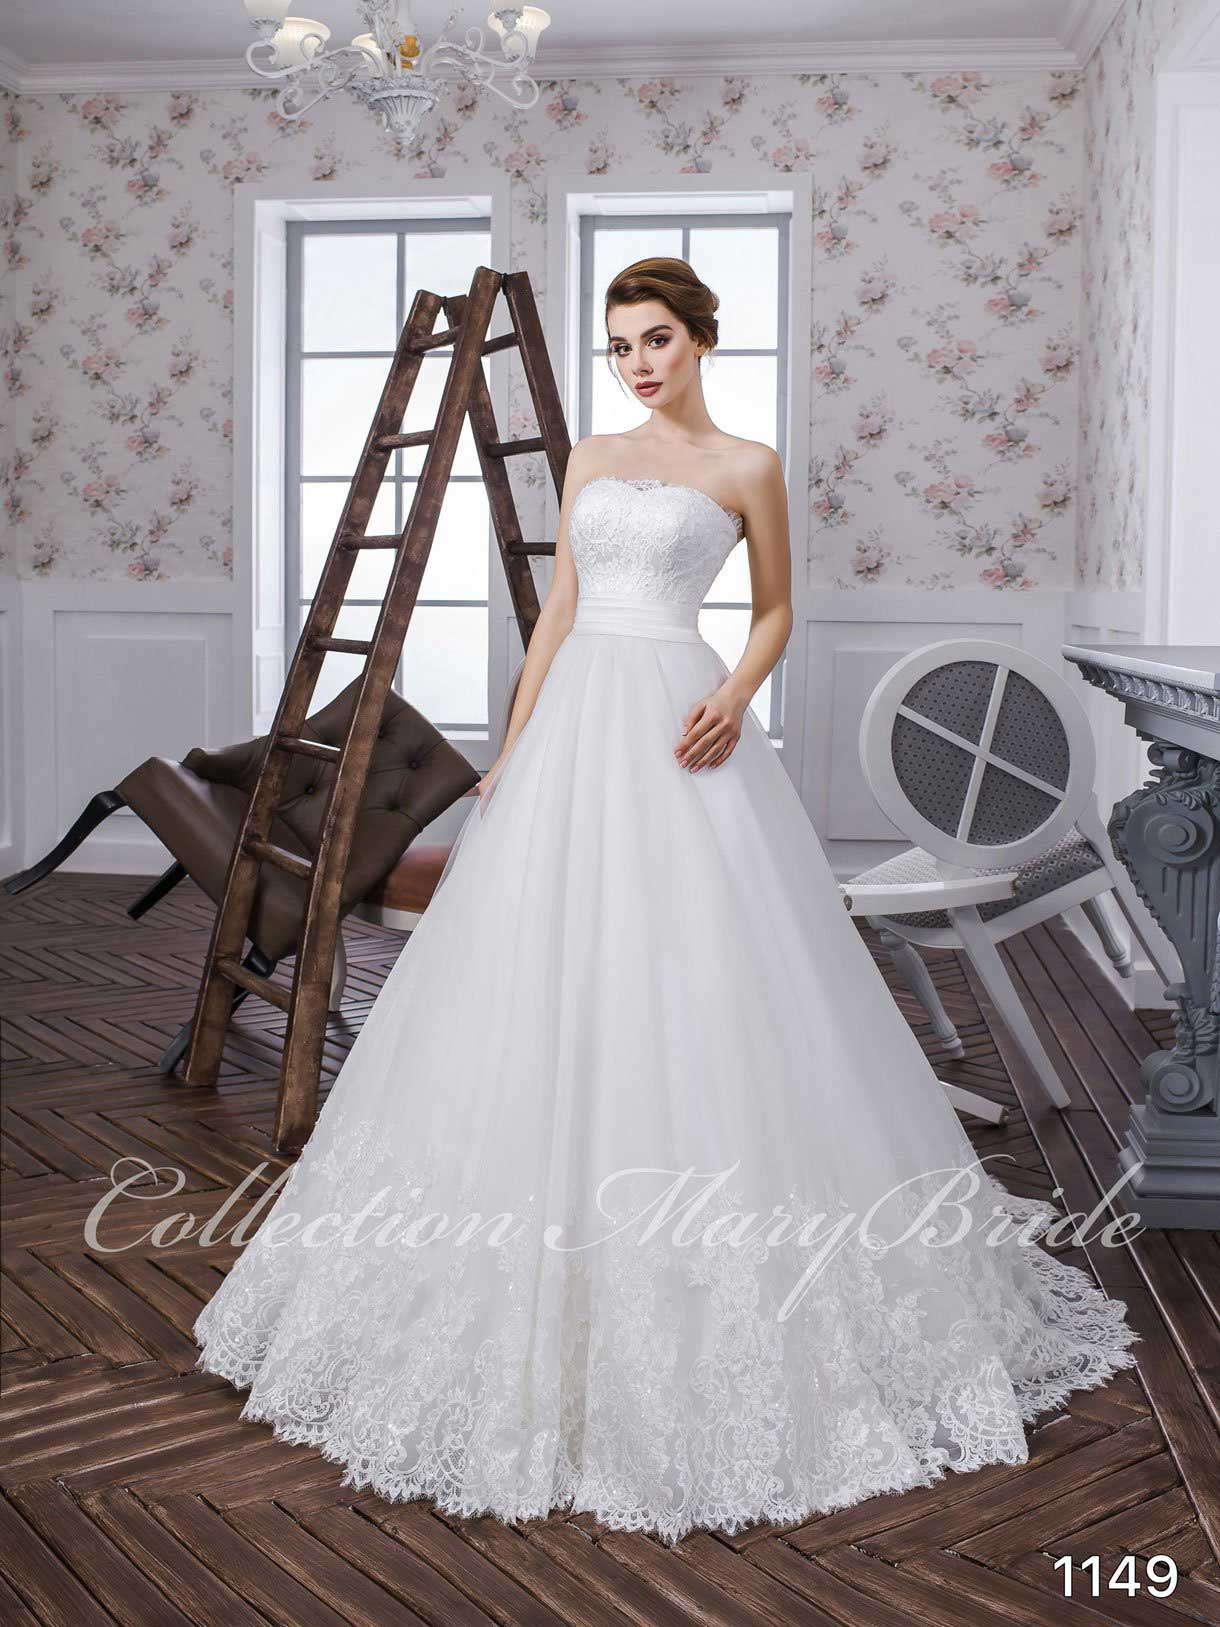 Collections of Wedding Gowns, Wedding Dress Collection Kitchener ...